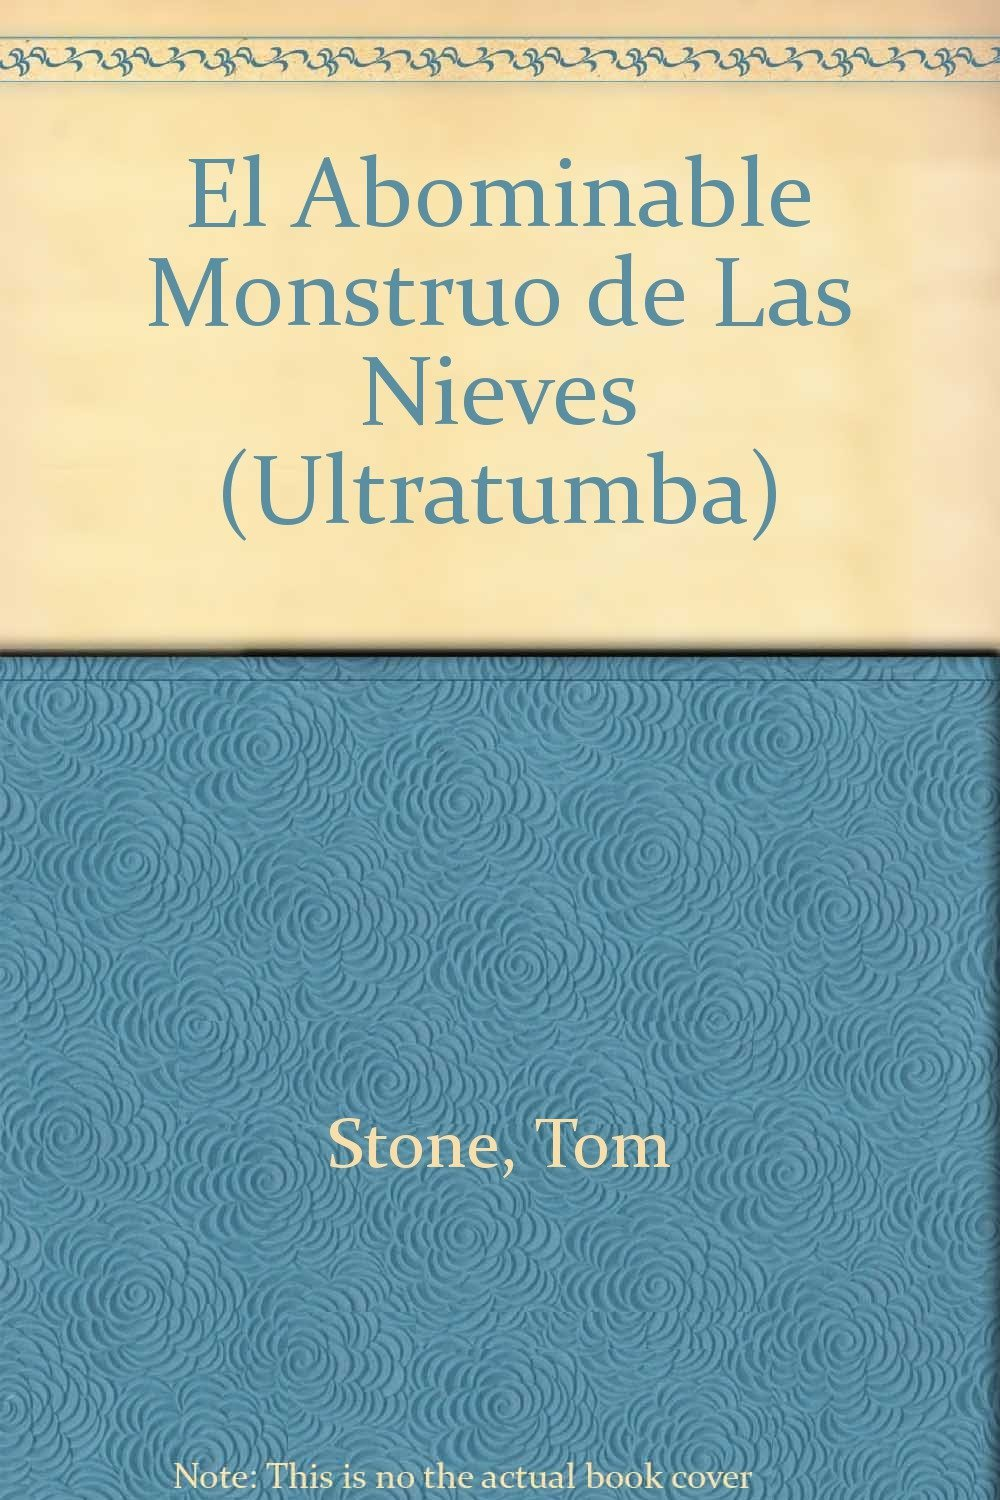 El abominable monstruo de las nieves / The Abominable Snow Monster (Ultratumba) (Spanish Edition) ebook